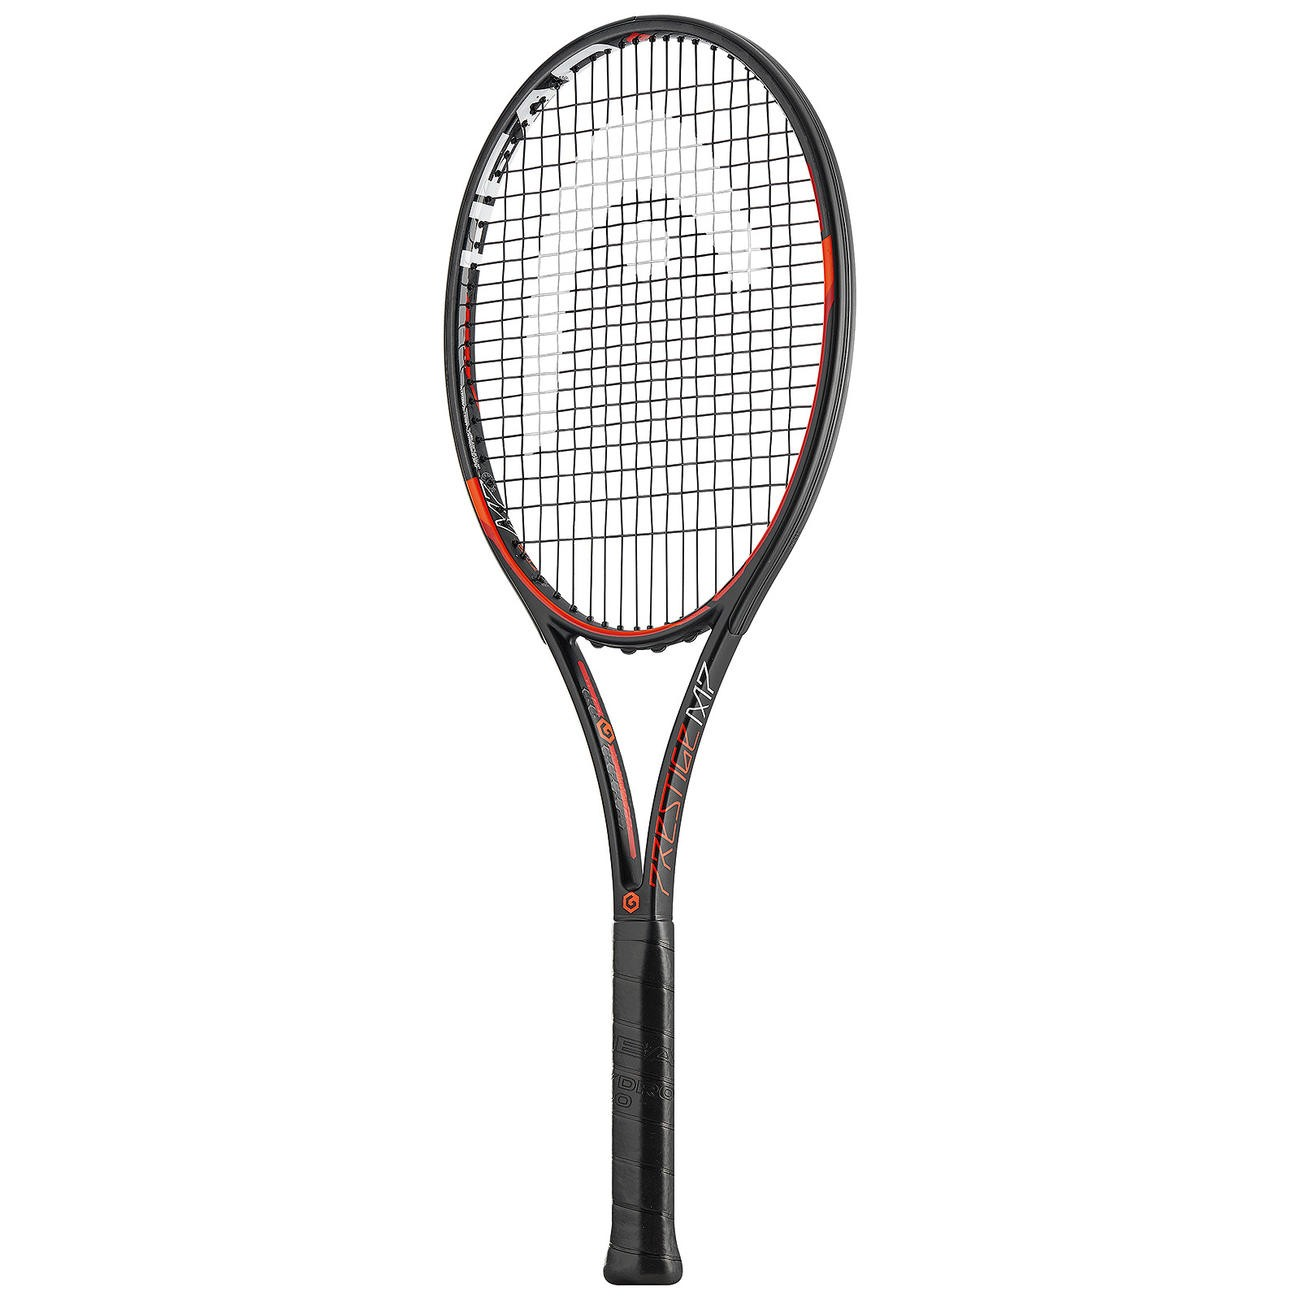 Rakieta tenisowa Head Graphene XT Prestige MP